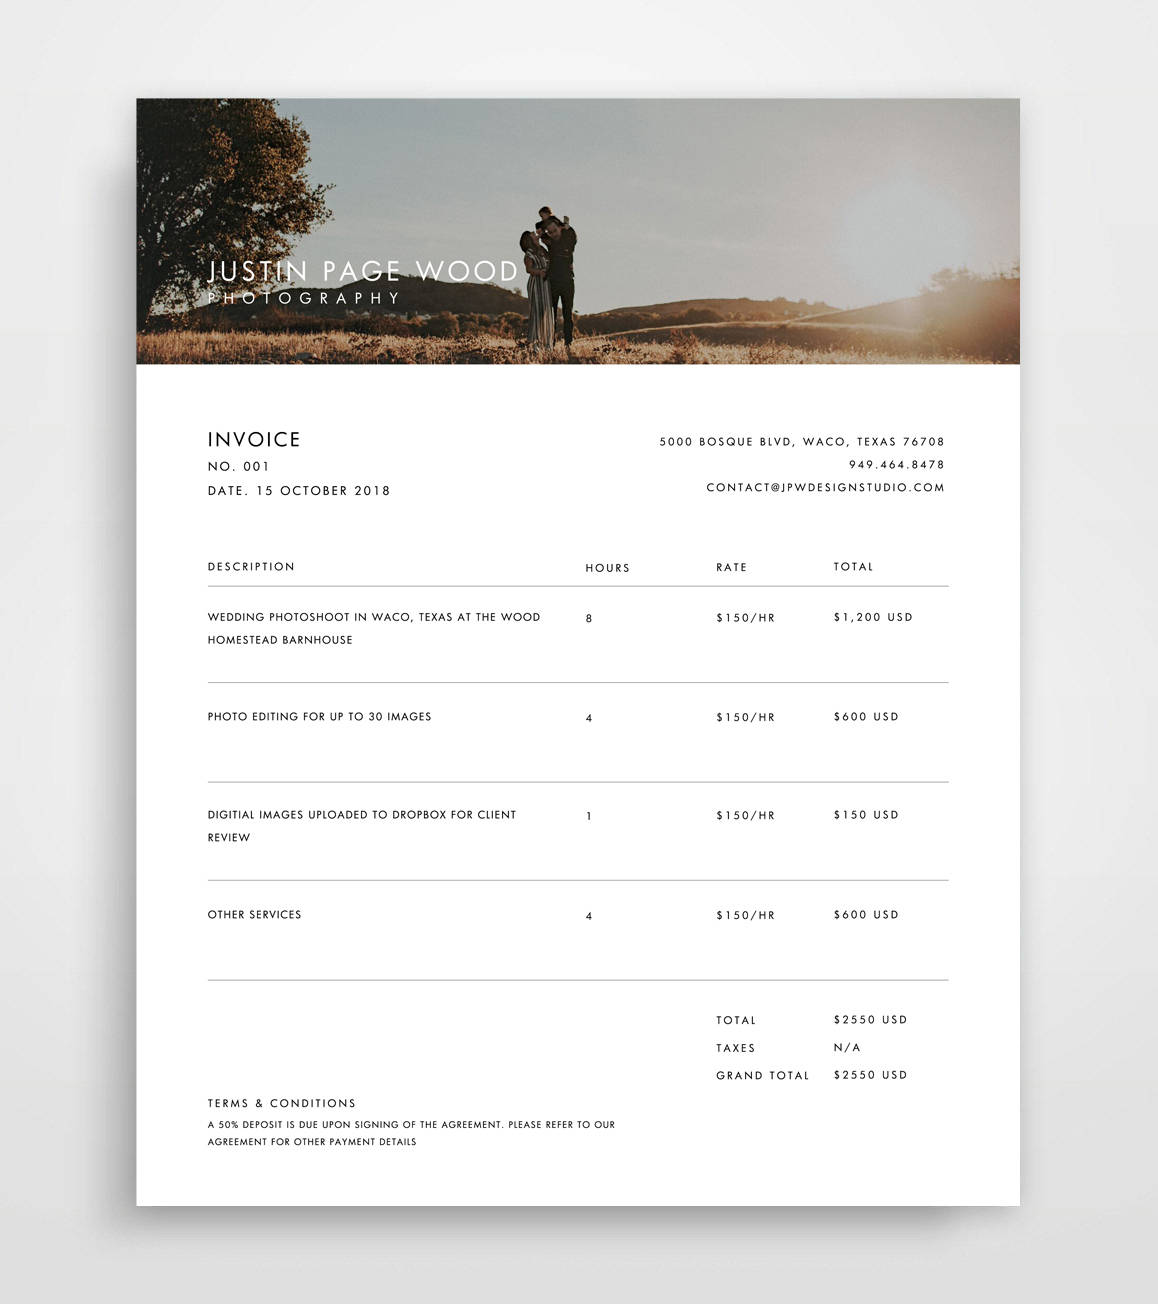 Professional Invoice Design 16 Samples  Templates to Inspire You